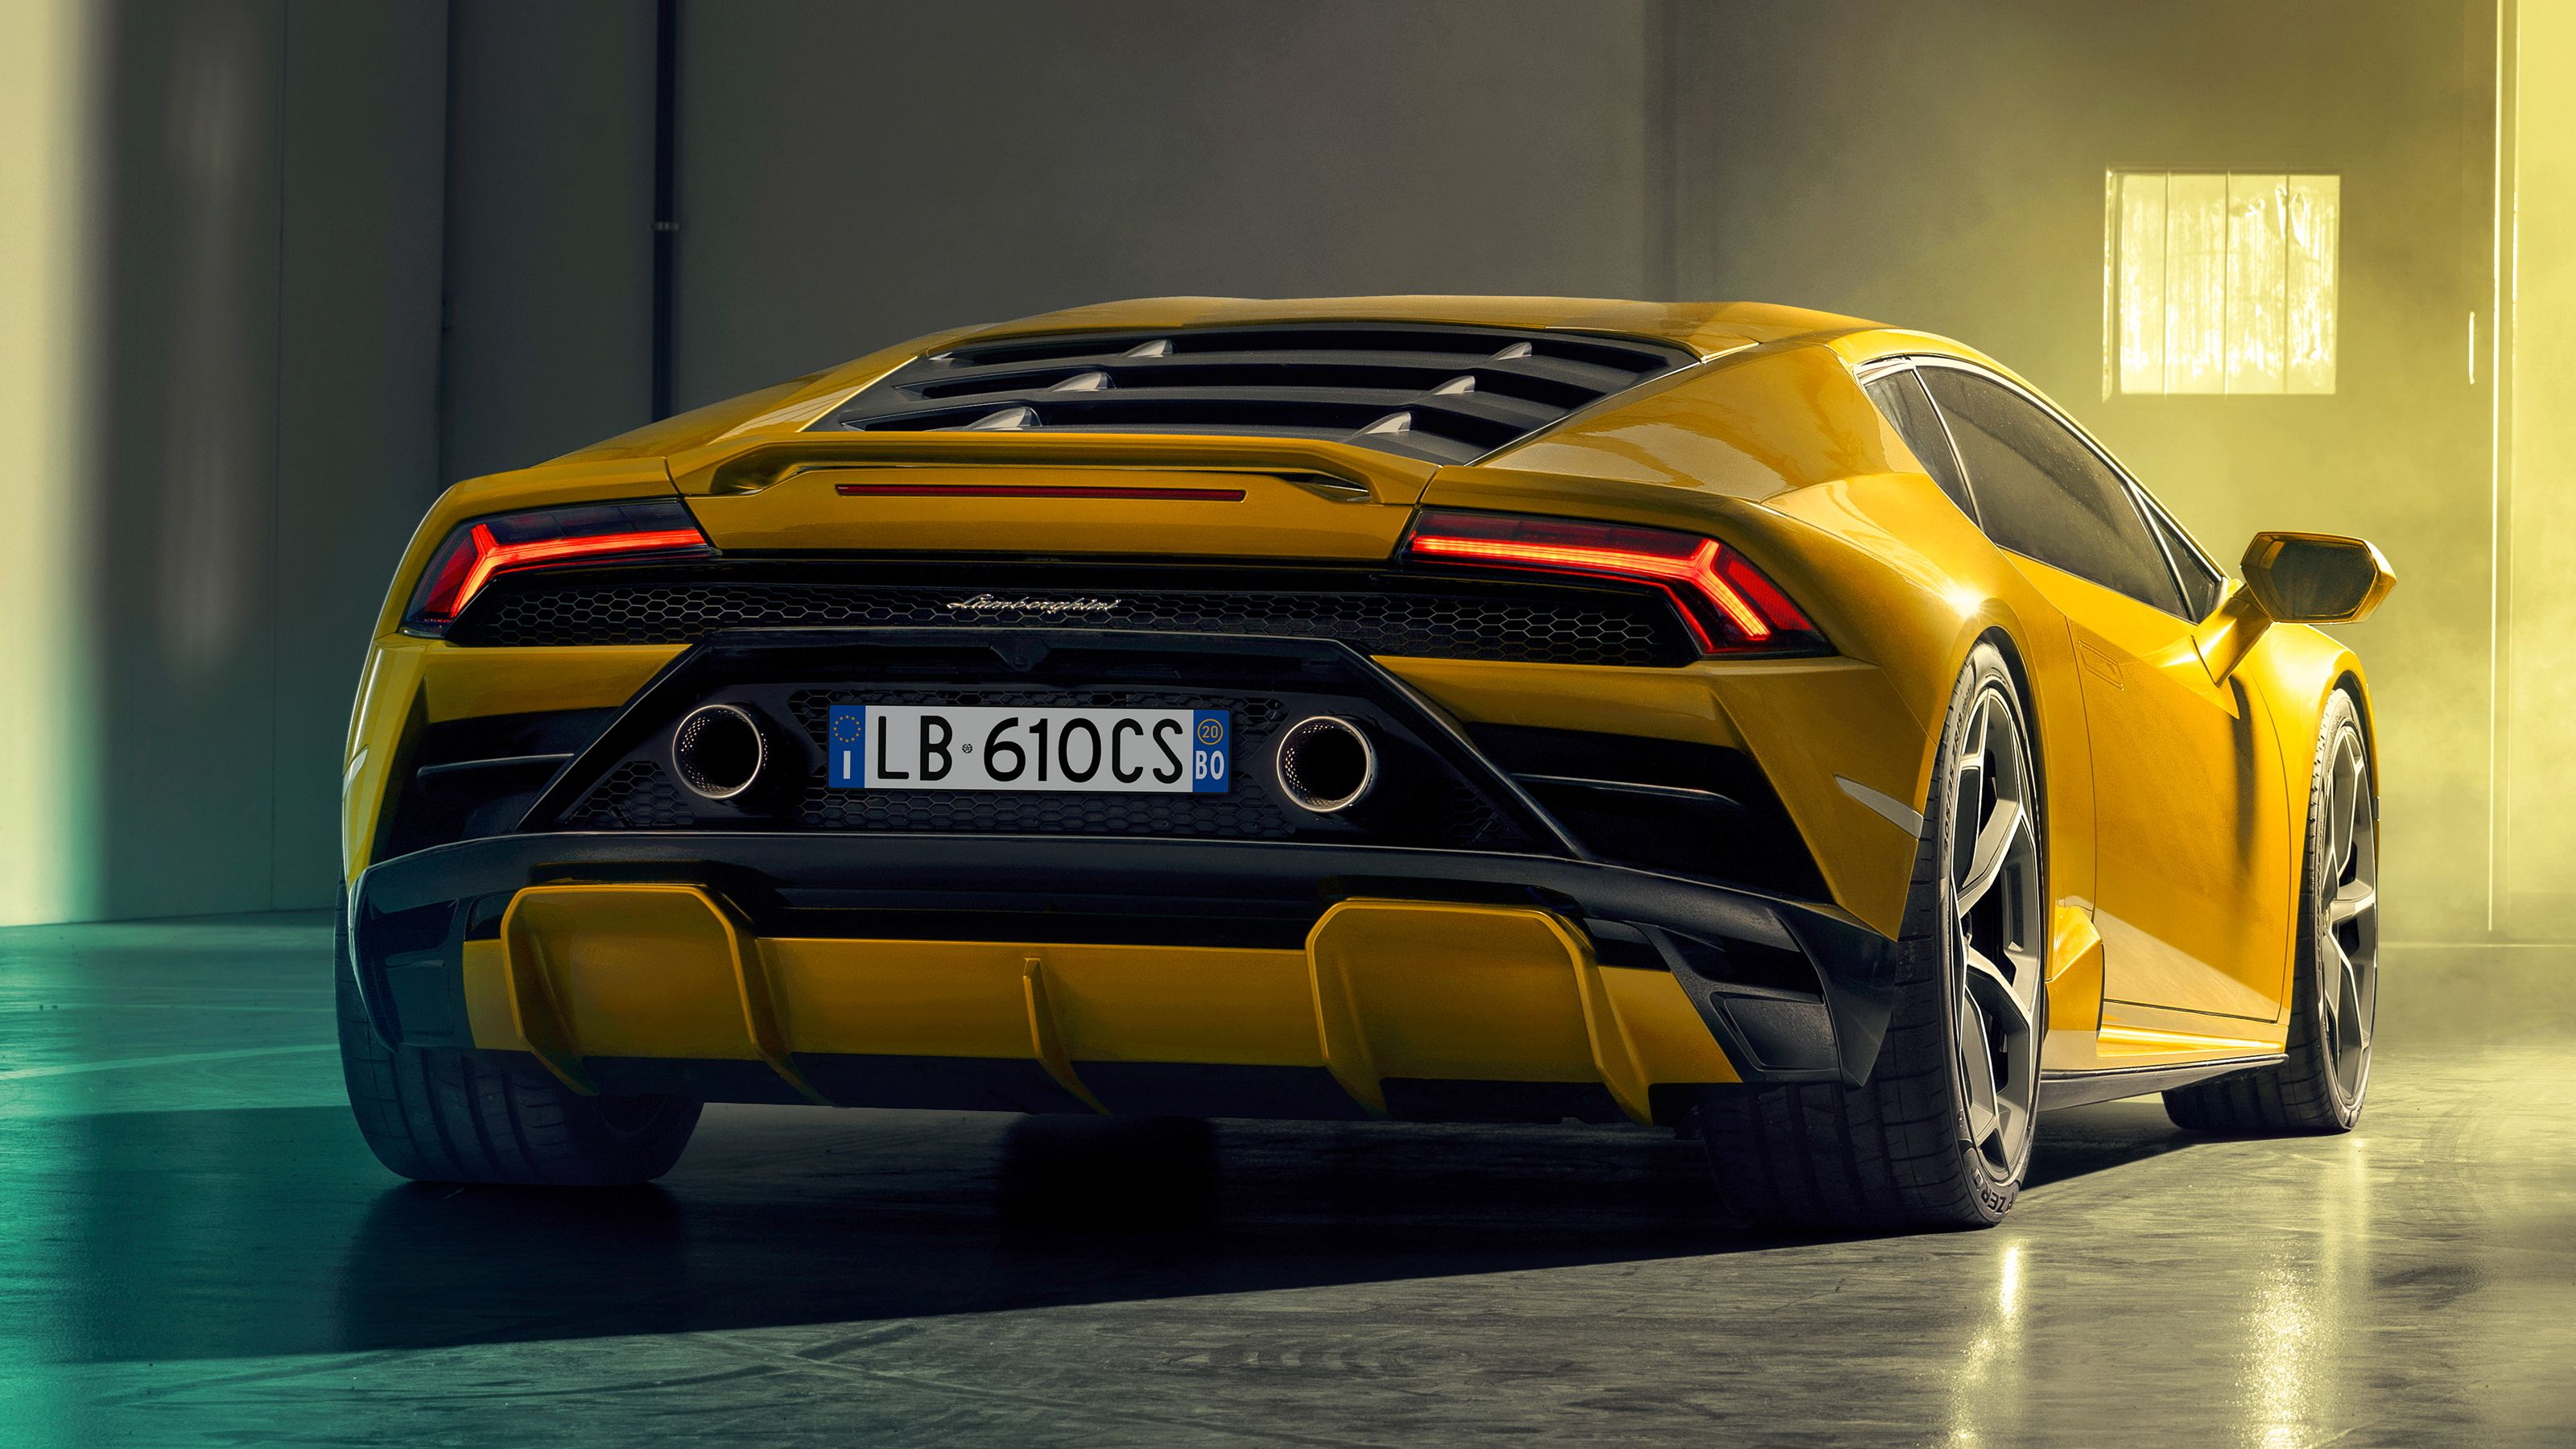 The Lamborghini Huracan Evo Finally Puts the Power Where It's Supposed to Be